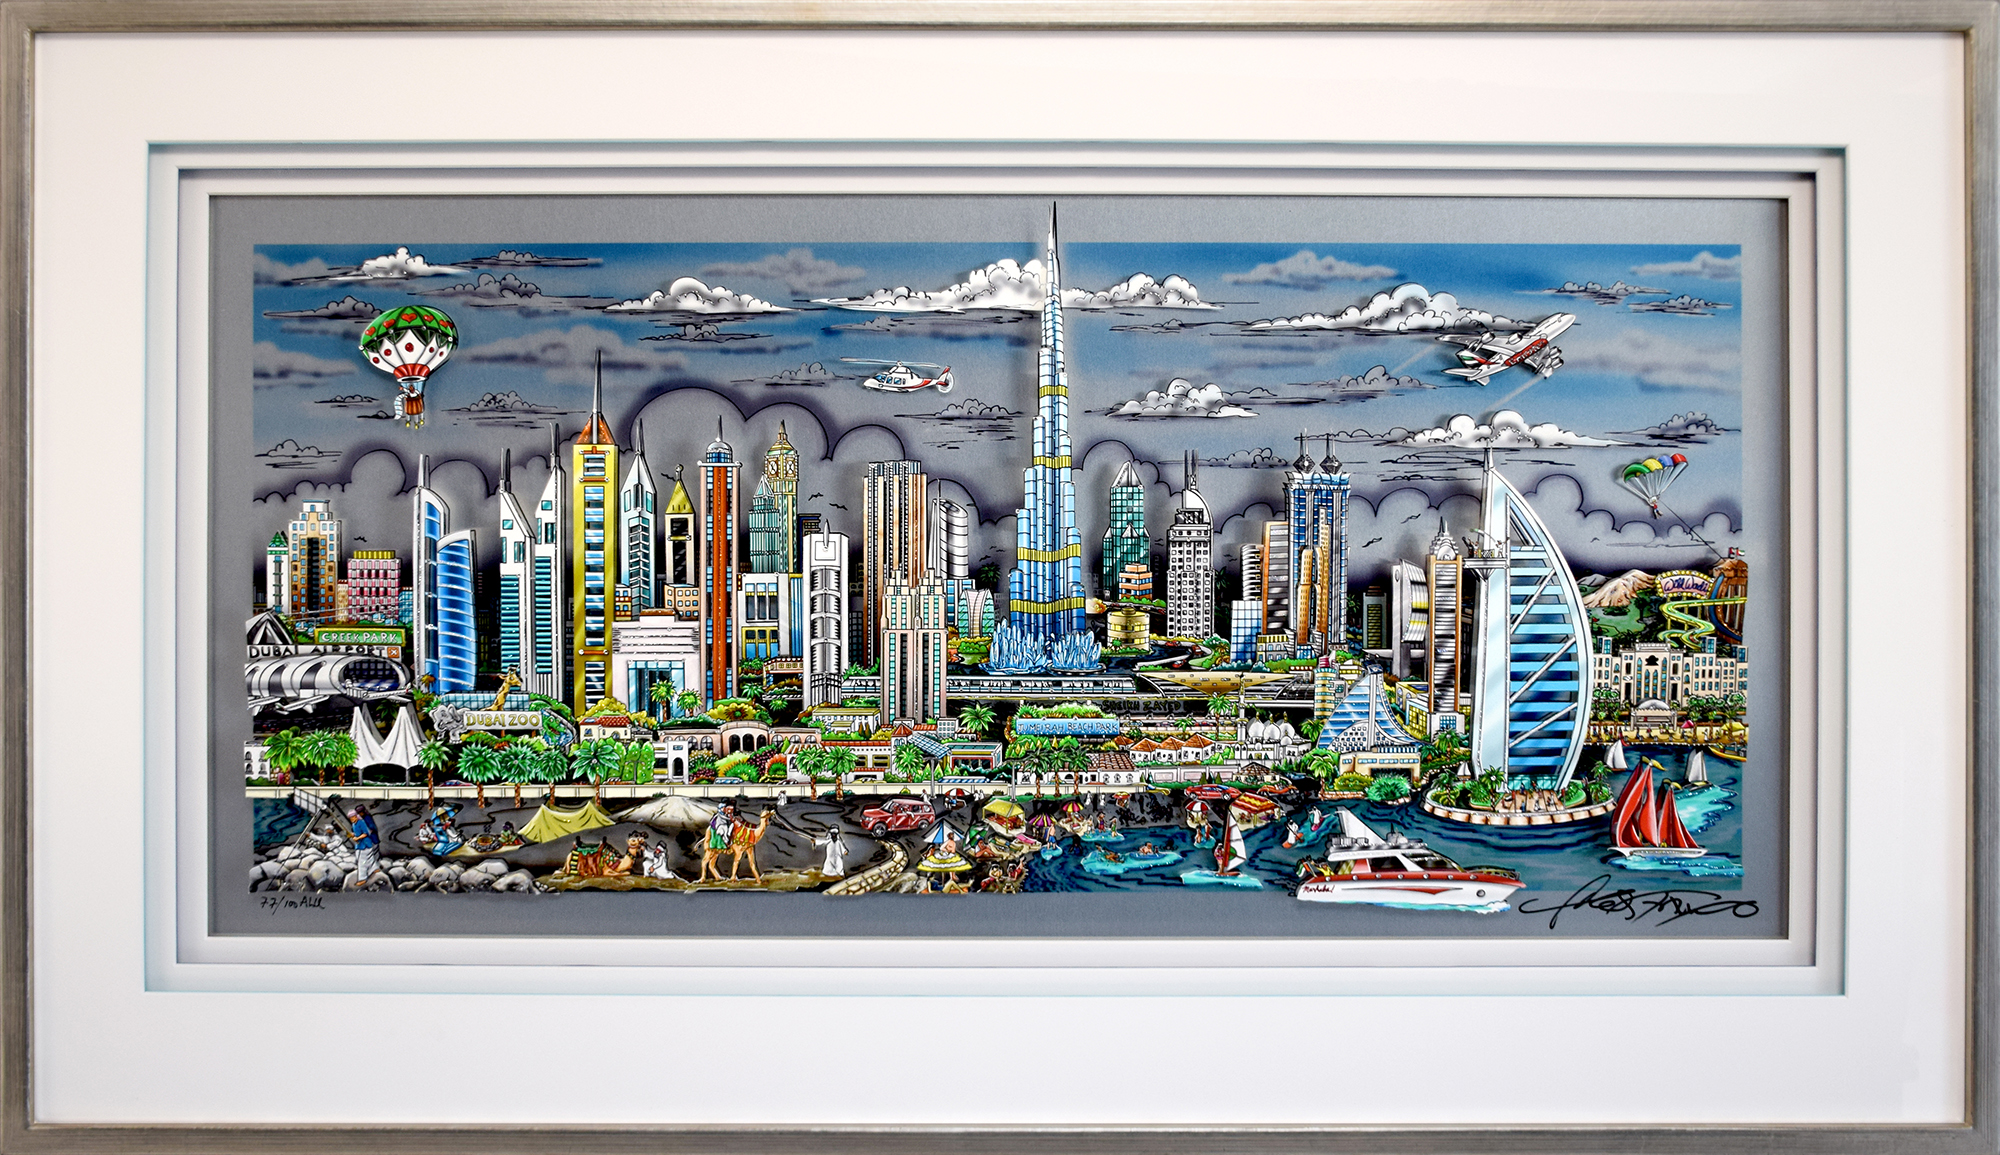 Charles Fazzino - Illusions of Dubai , 5552-008-861-948-979